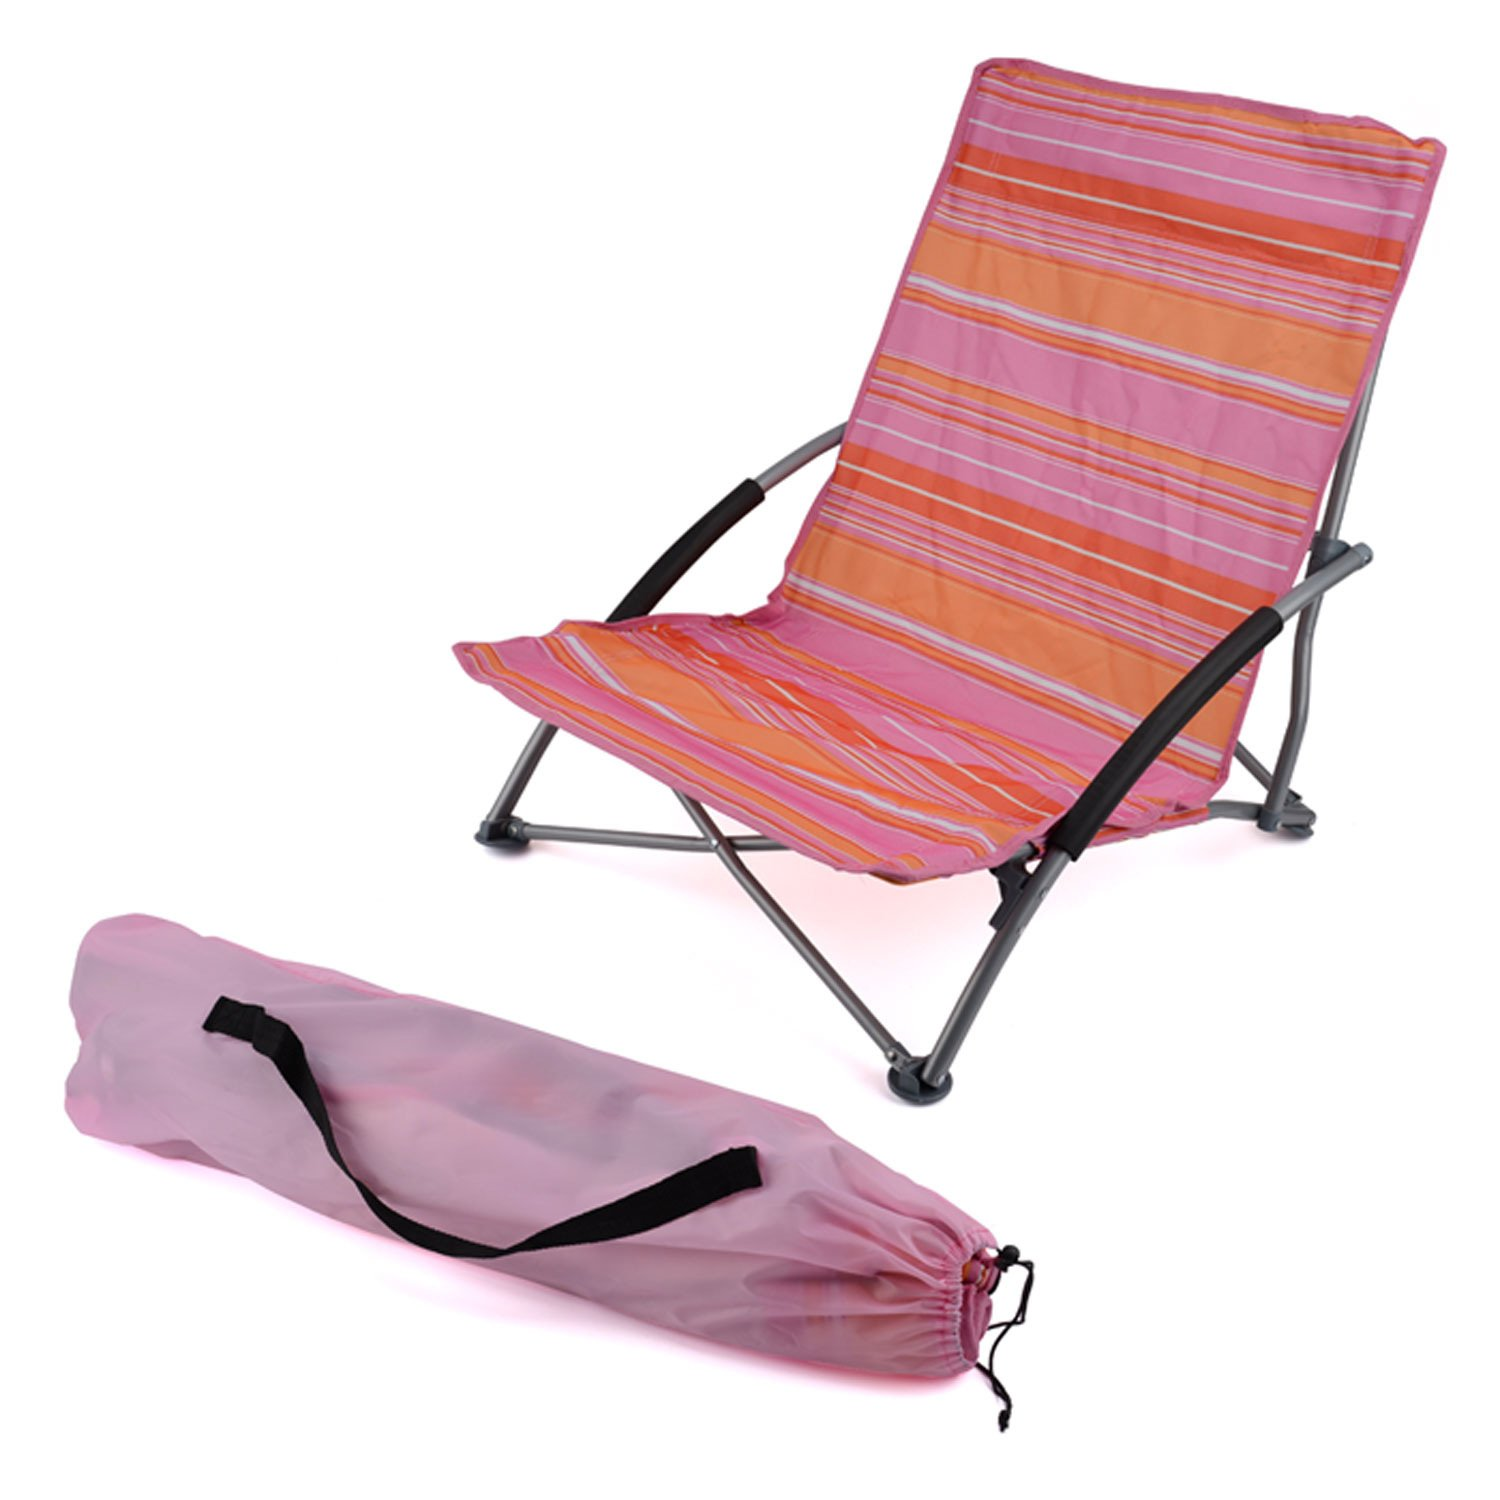 Lightweight camping chairs - Lightweight Camping Chairs 28